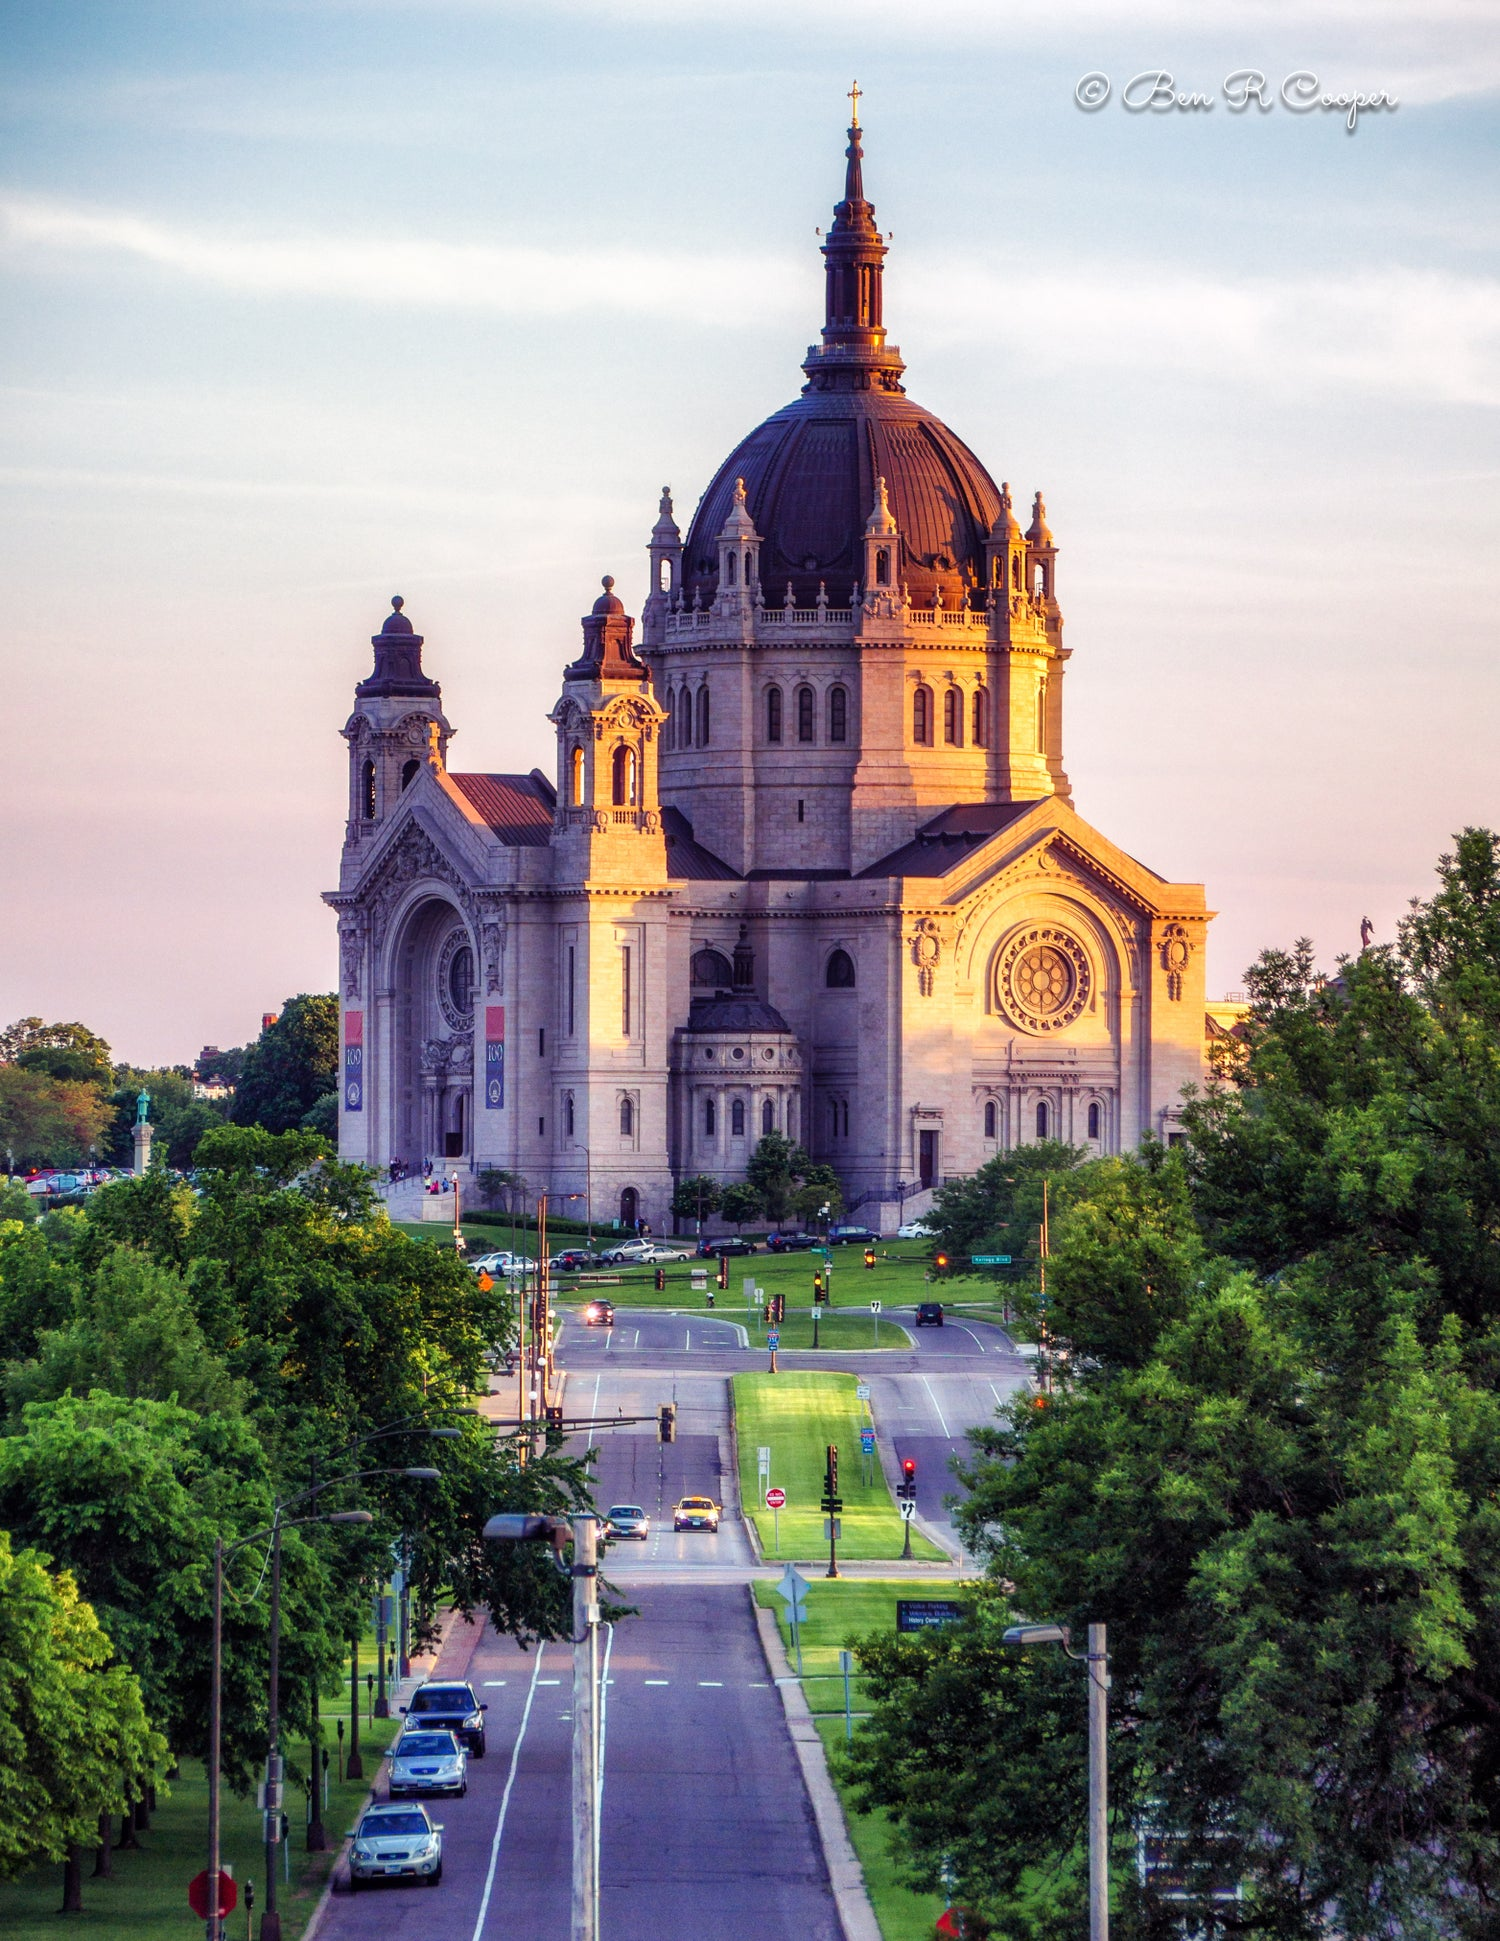 Cathedral of St. Paul at Sunset